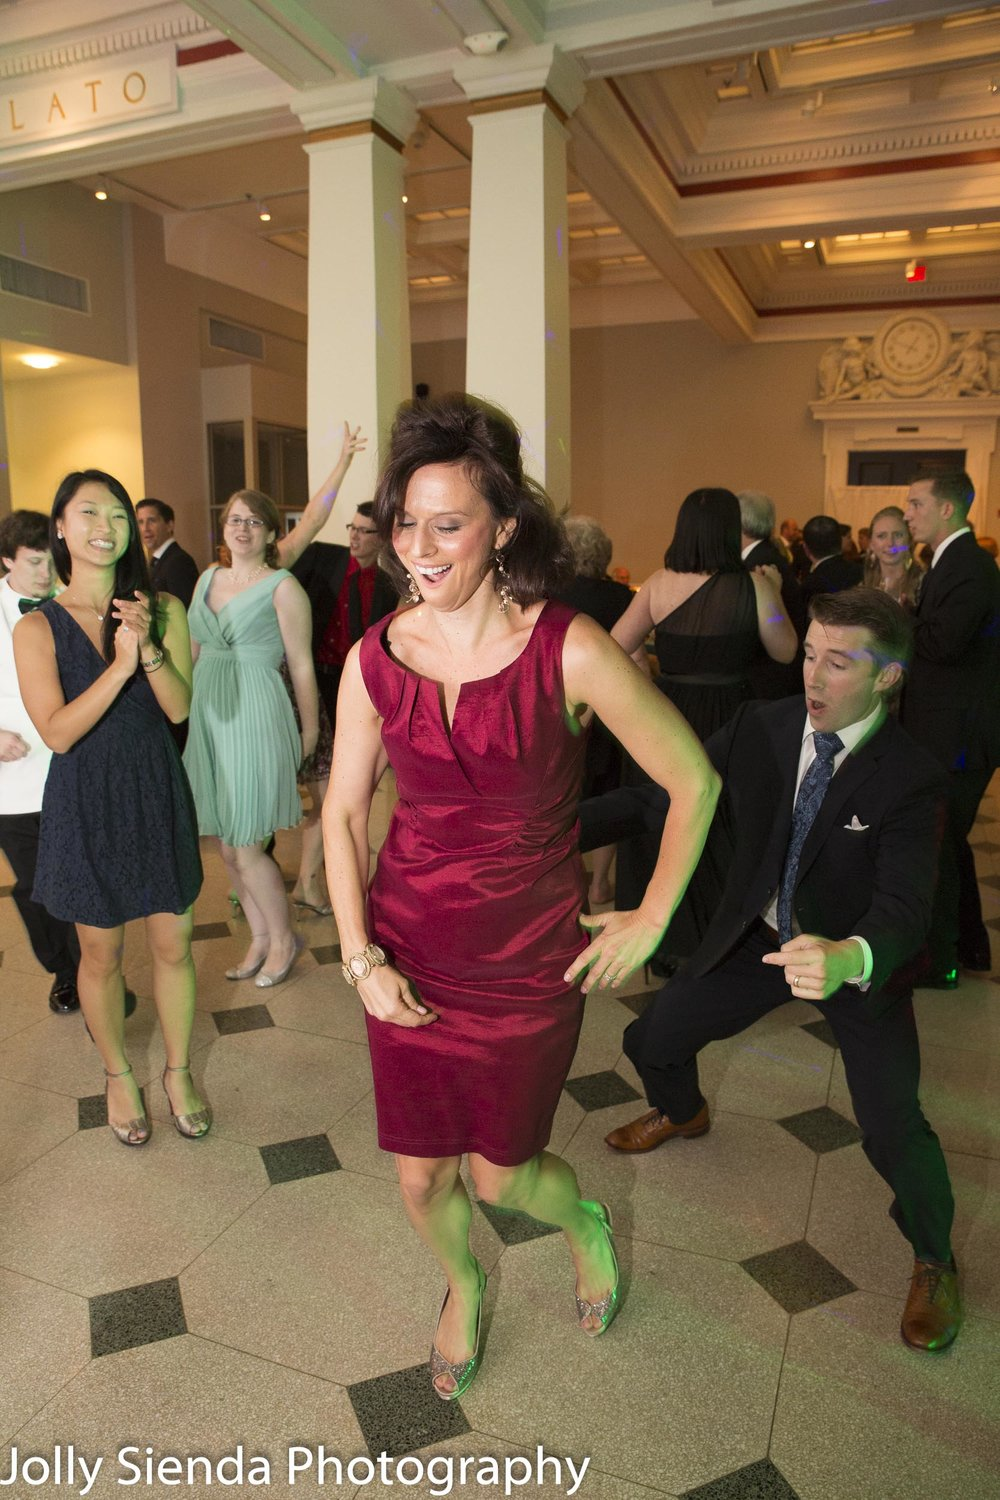 Crazy dancing at a wedding, wedding photography